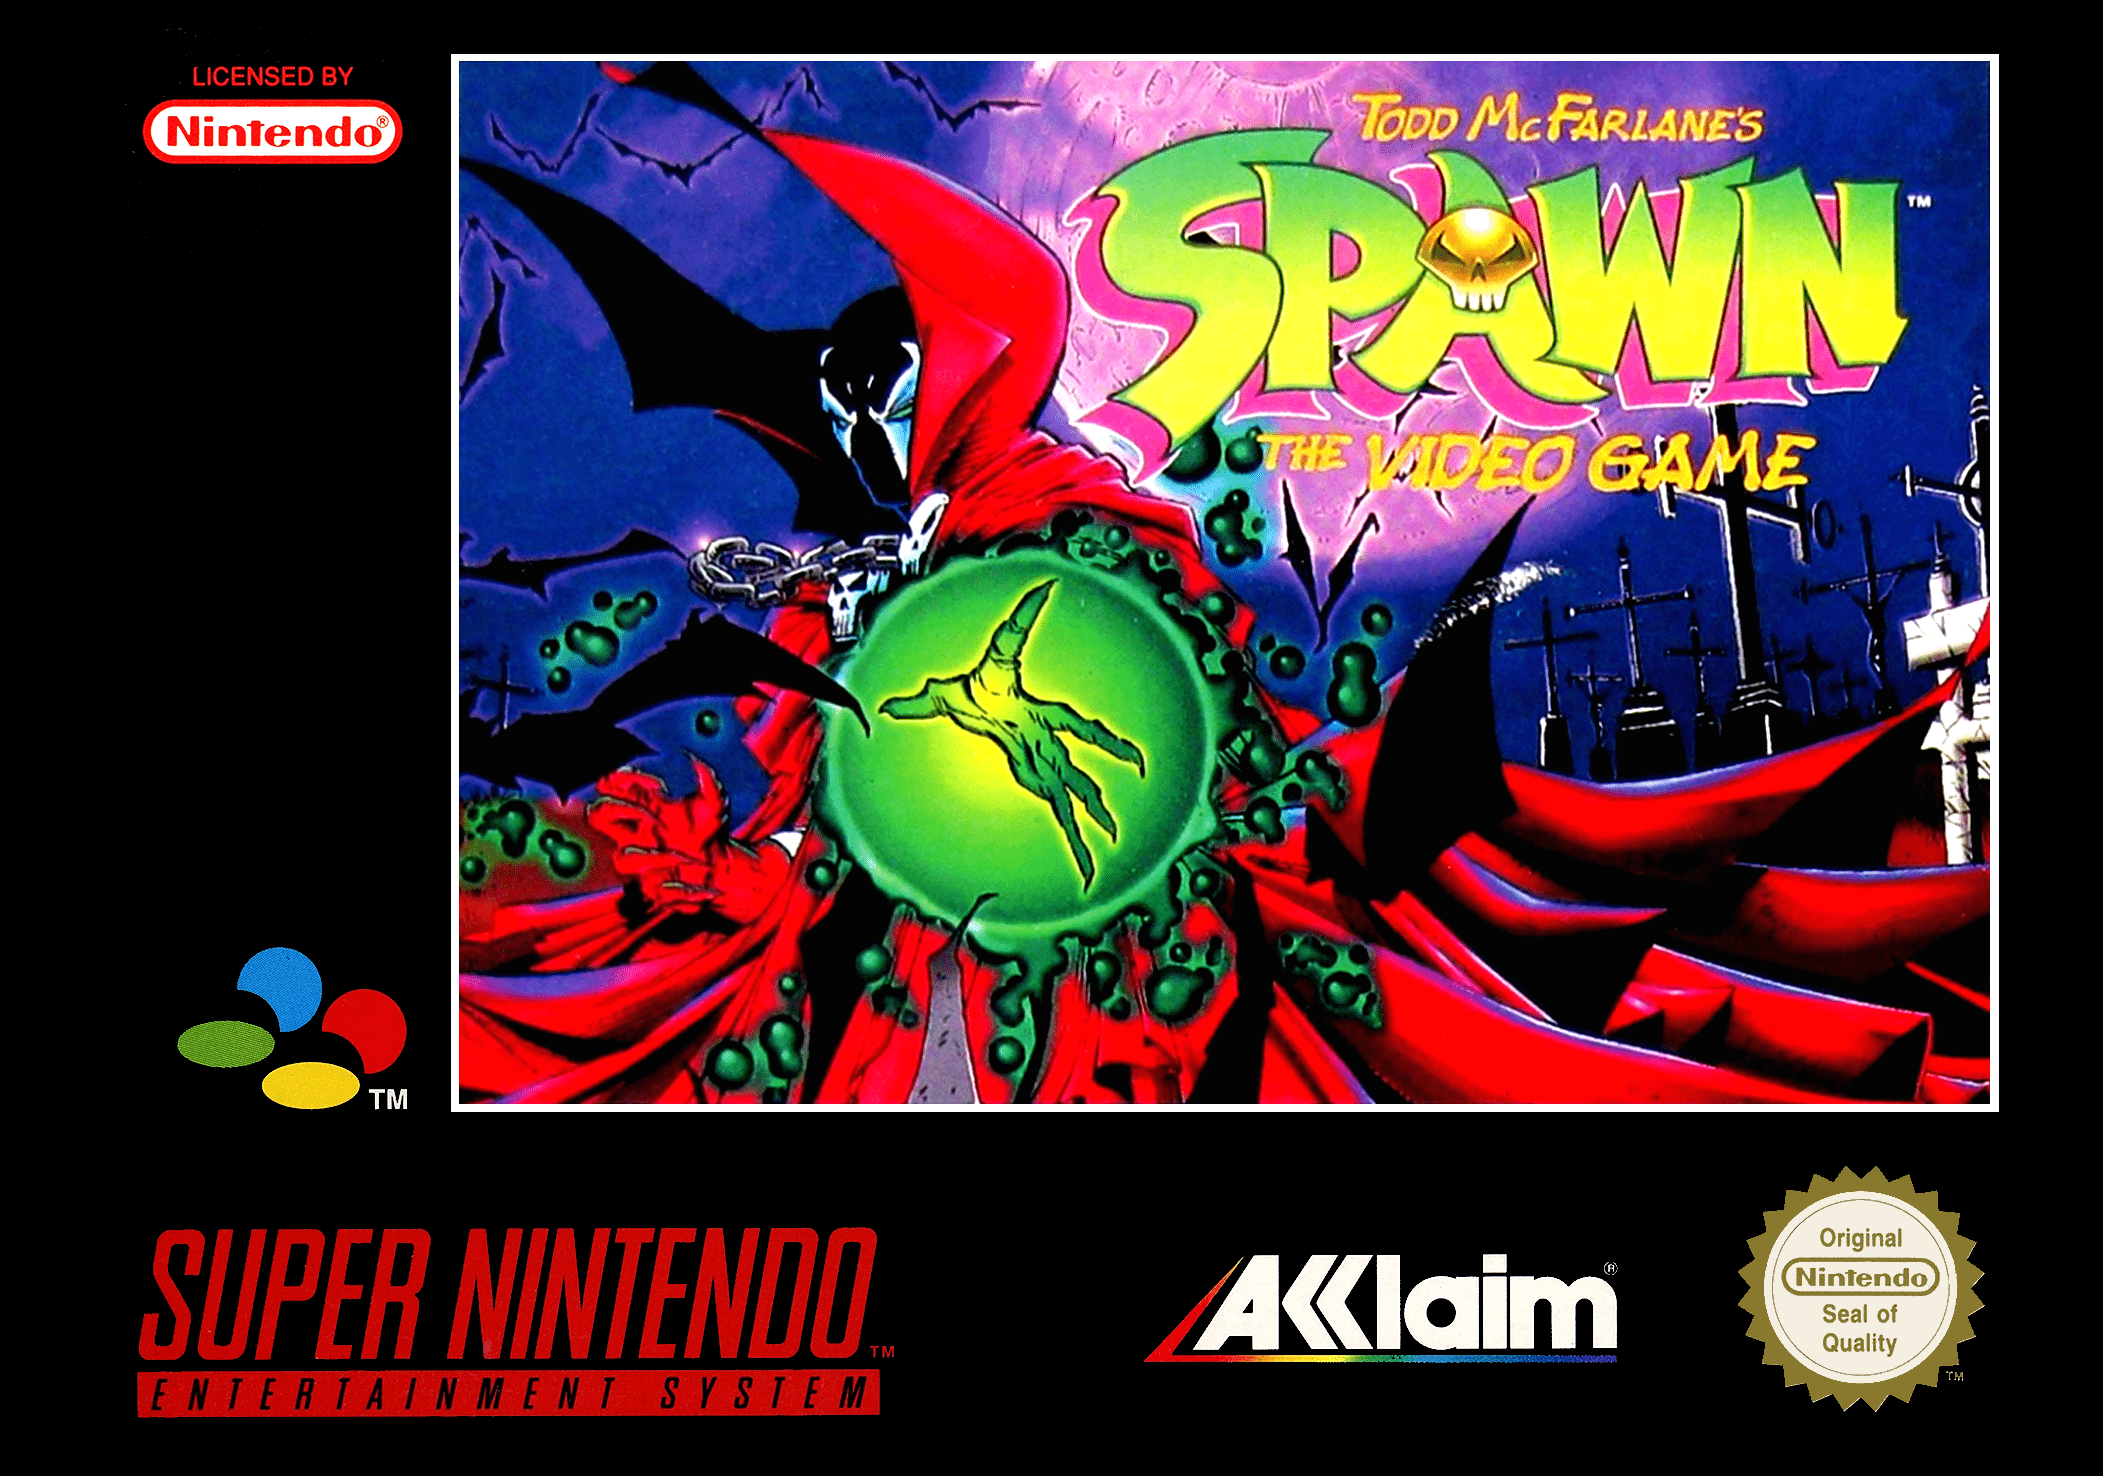 Todd McFarlane's Spawn The Video Game stats facts